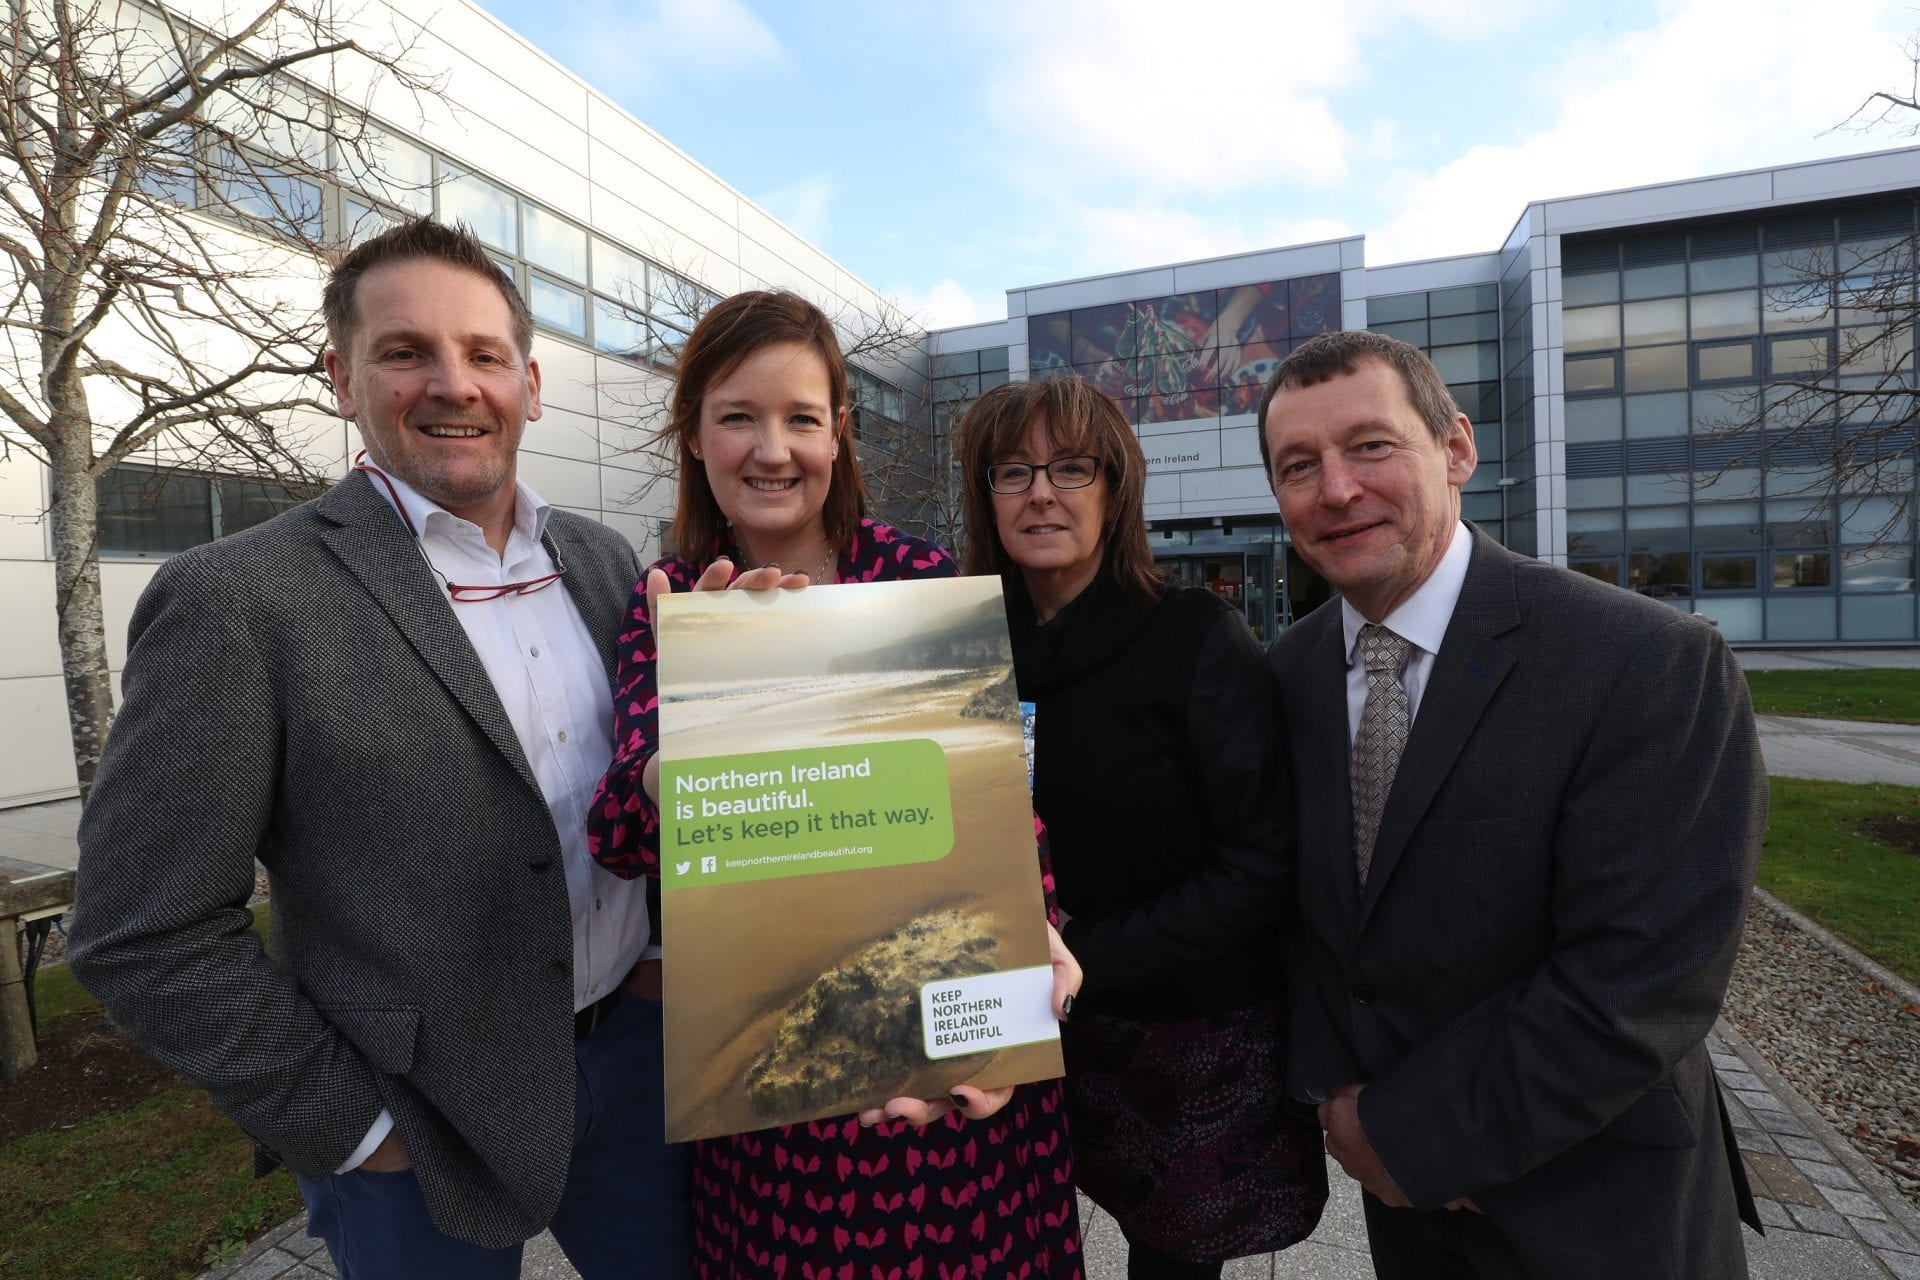 Local businesses, government and NGOs met at a seminar hosted by local charity Keep Northern Ireland Beautiful in collaboration with Coca-Cola